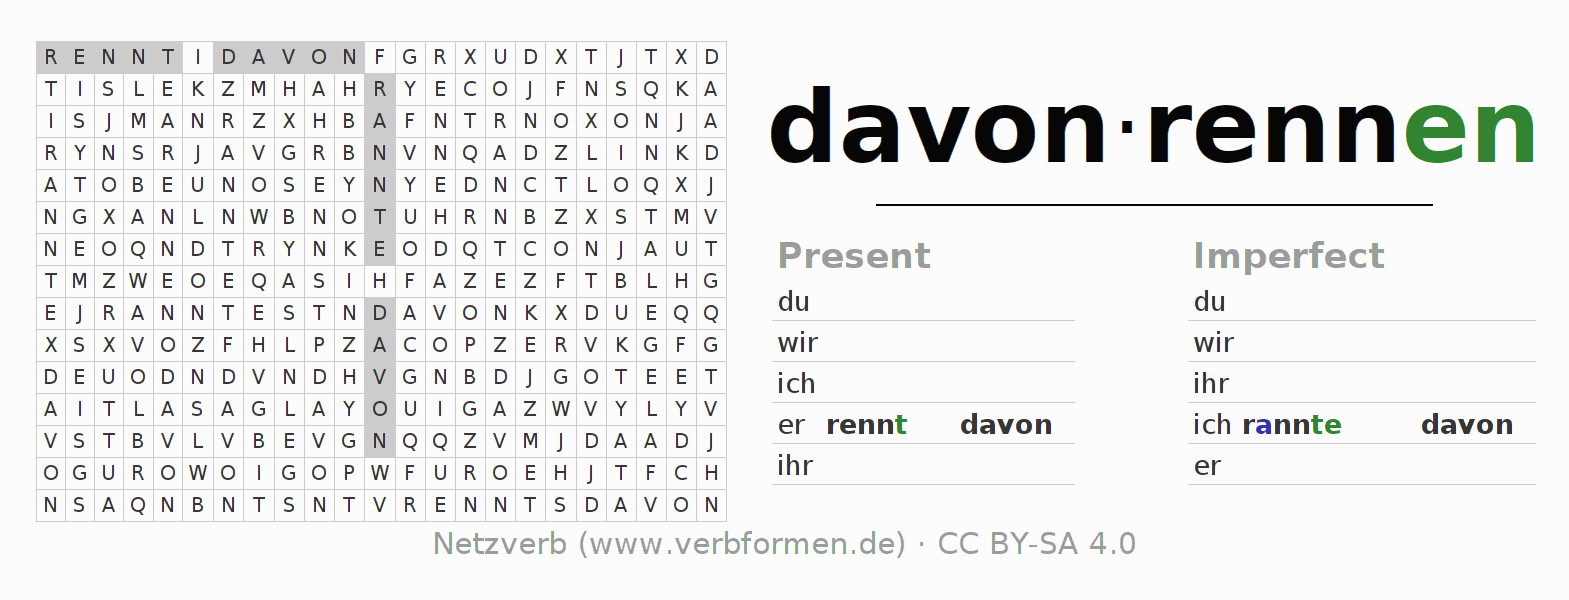 Word search puzzle for the conjugation of the verb davonrennen